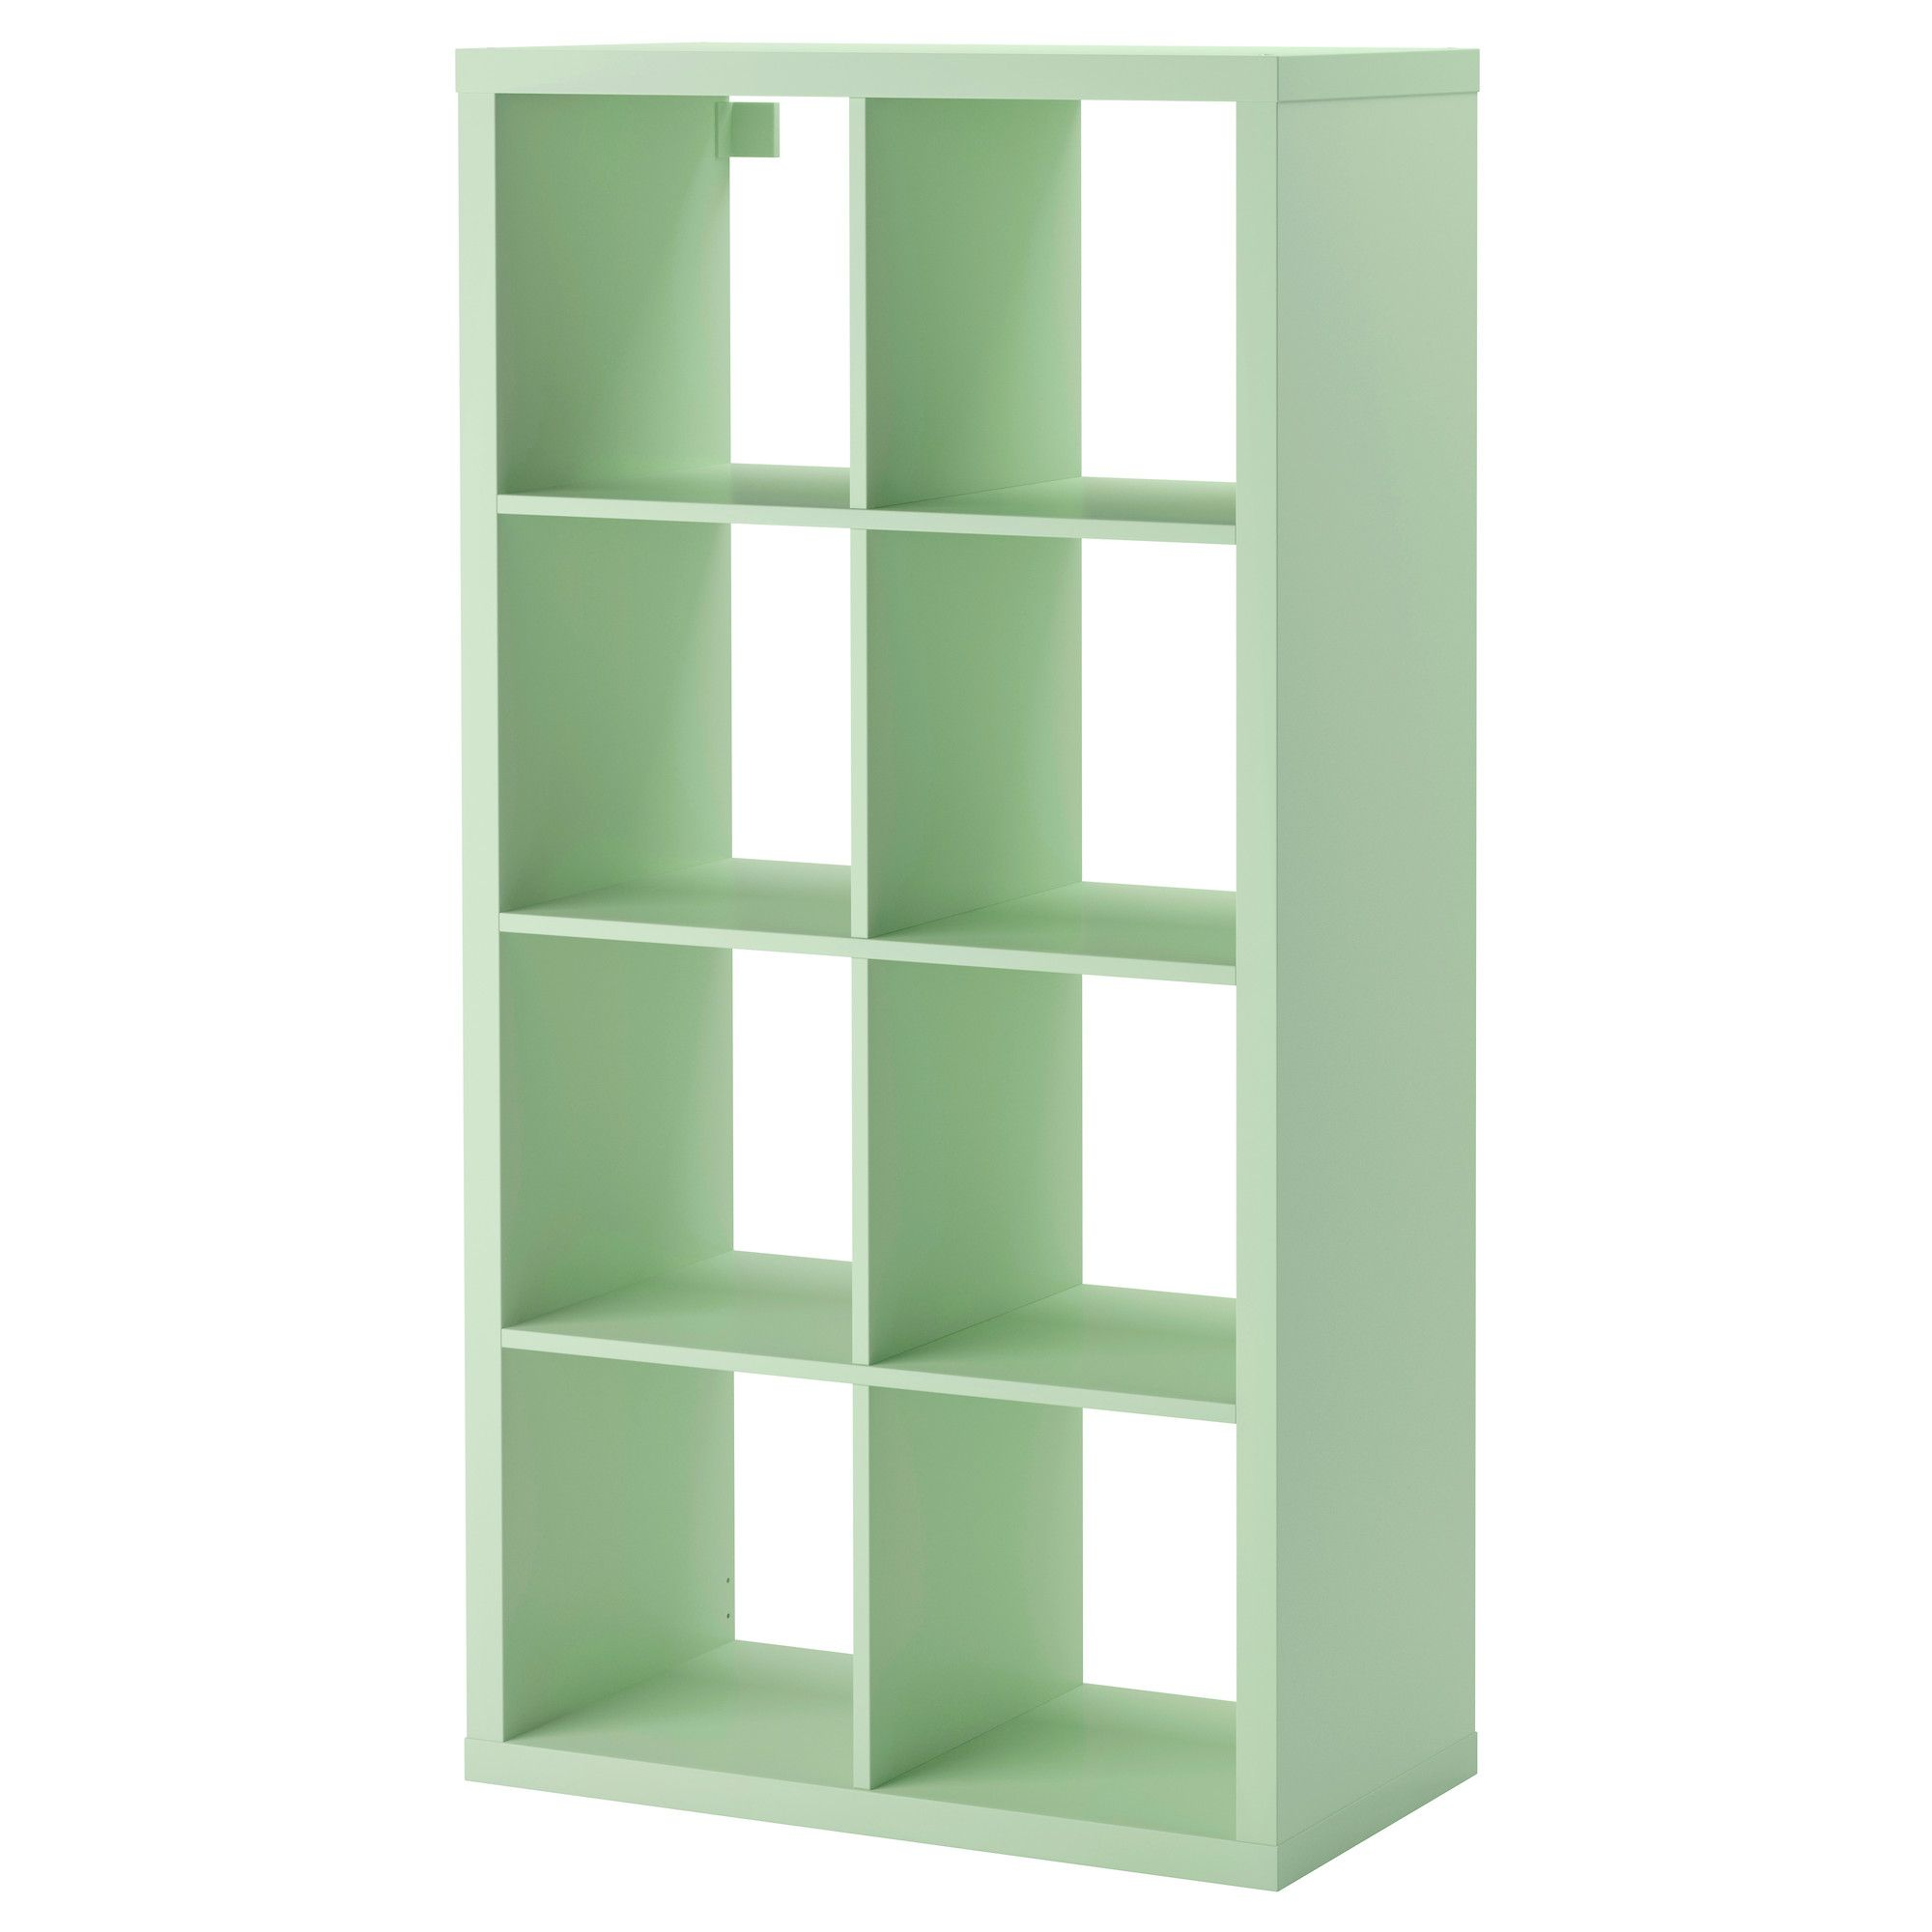 ikea shelves metal storages bookshelf bookcases tier awesome modern and